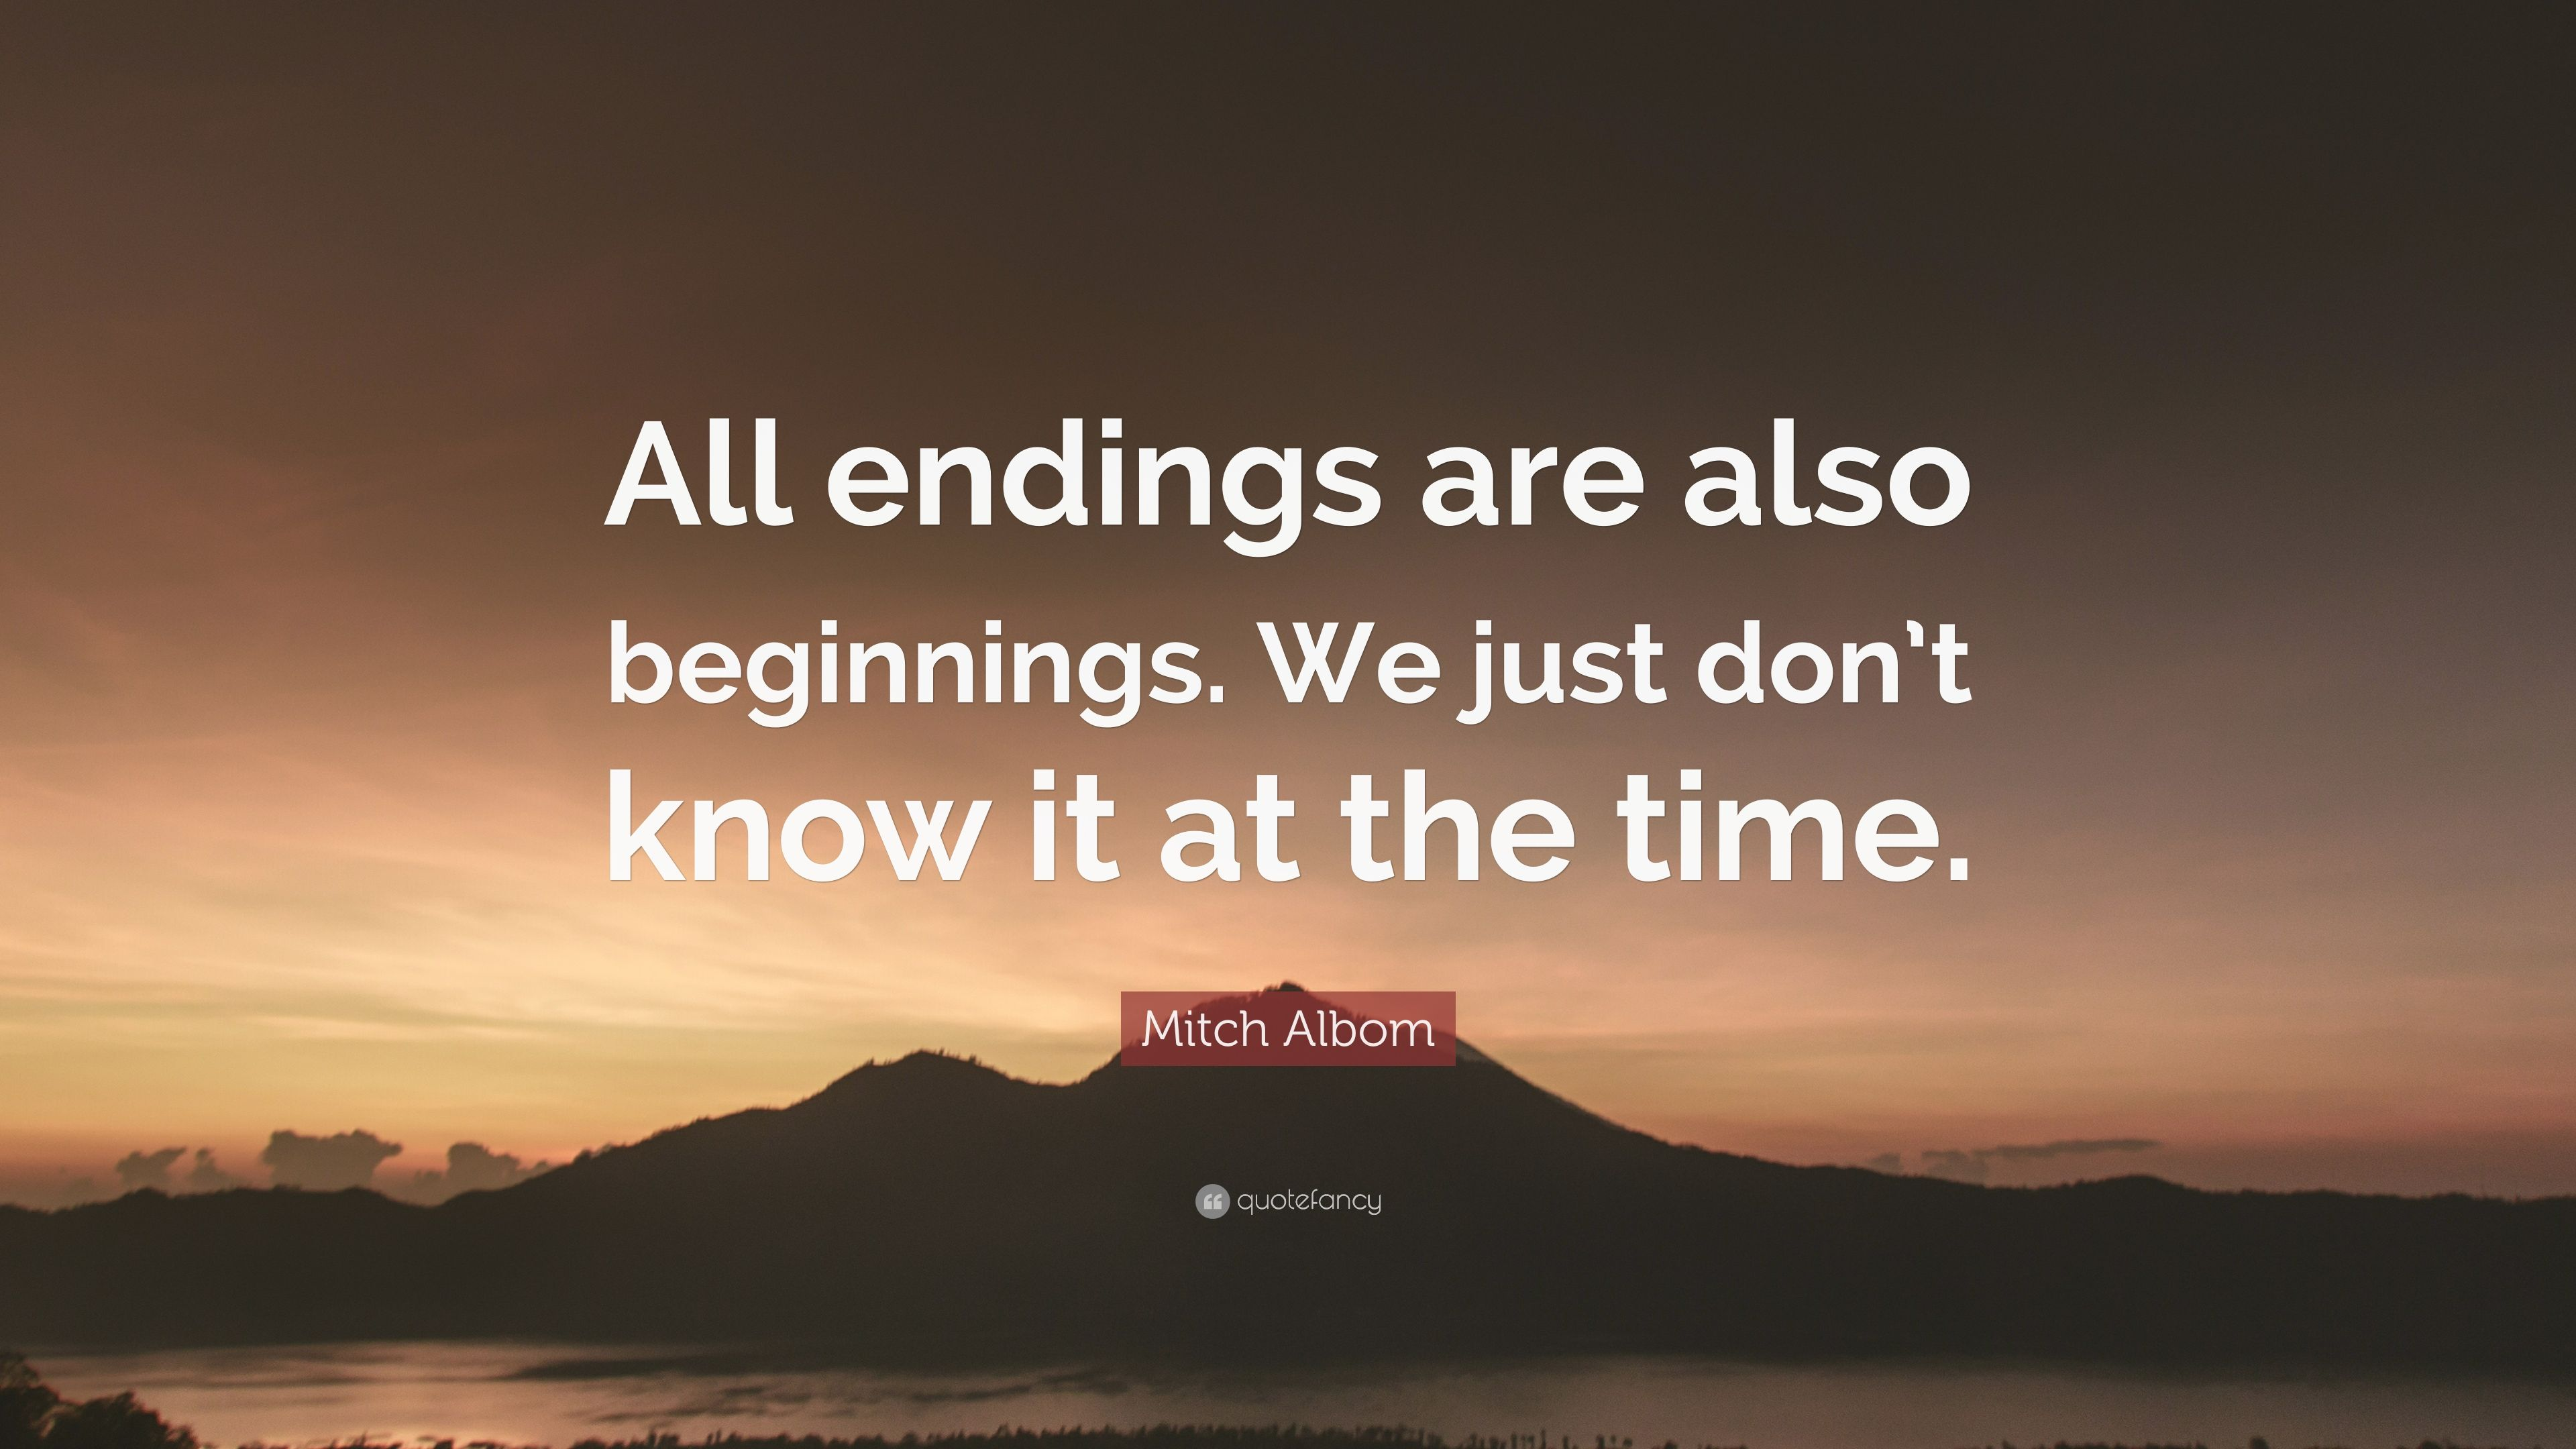 Great Mitch Albom Quote: U201cAll Endings Are Also Beginnings. We Just Donu0027t